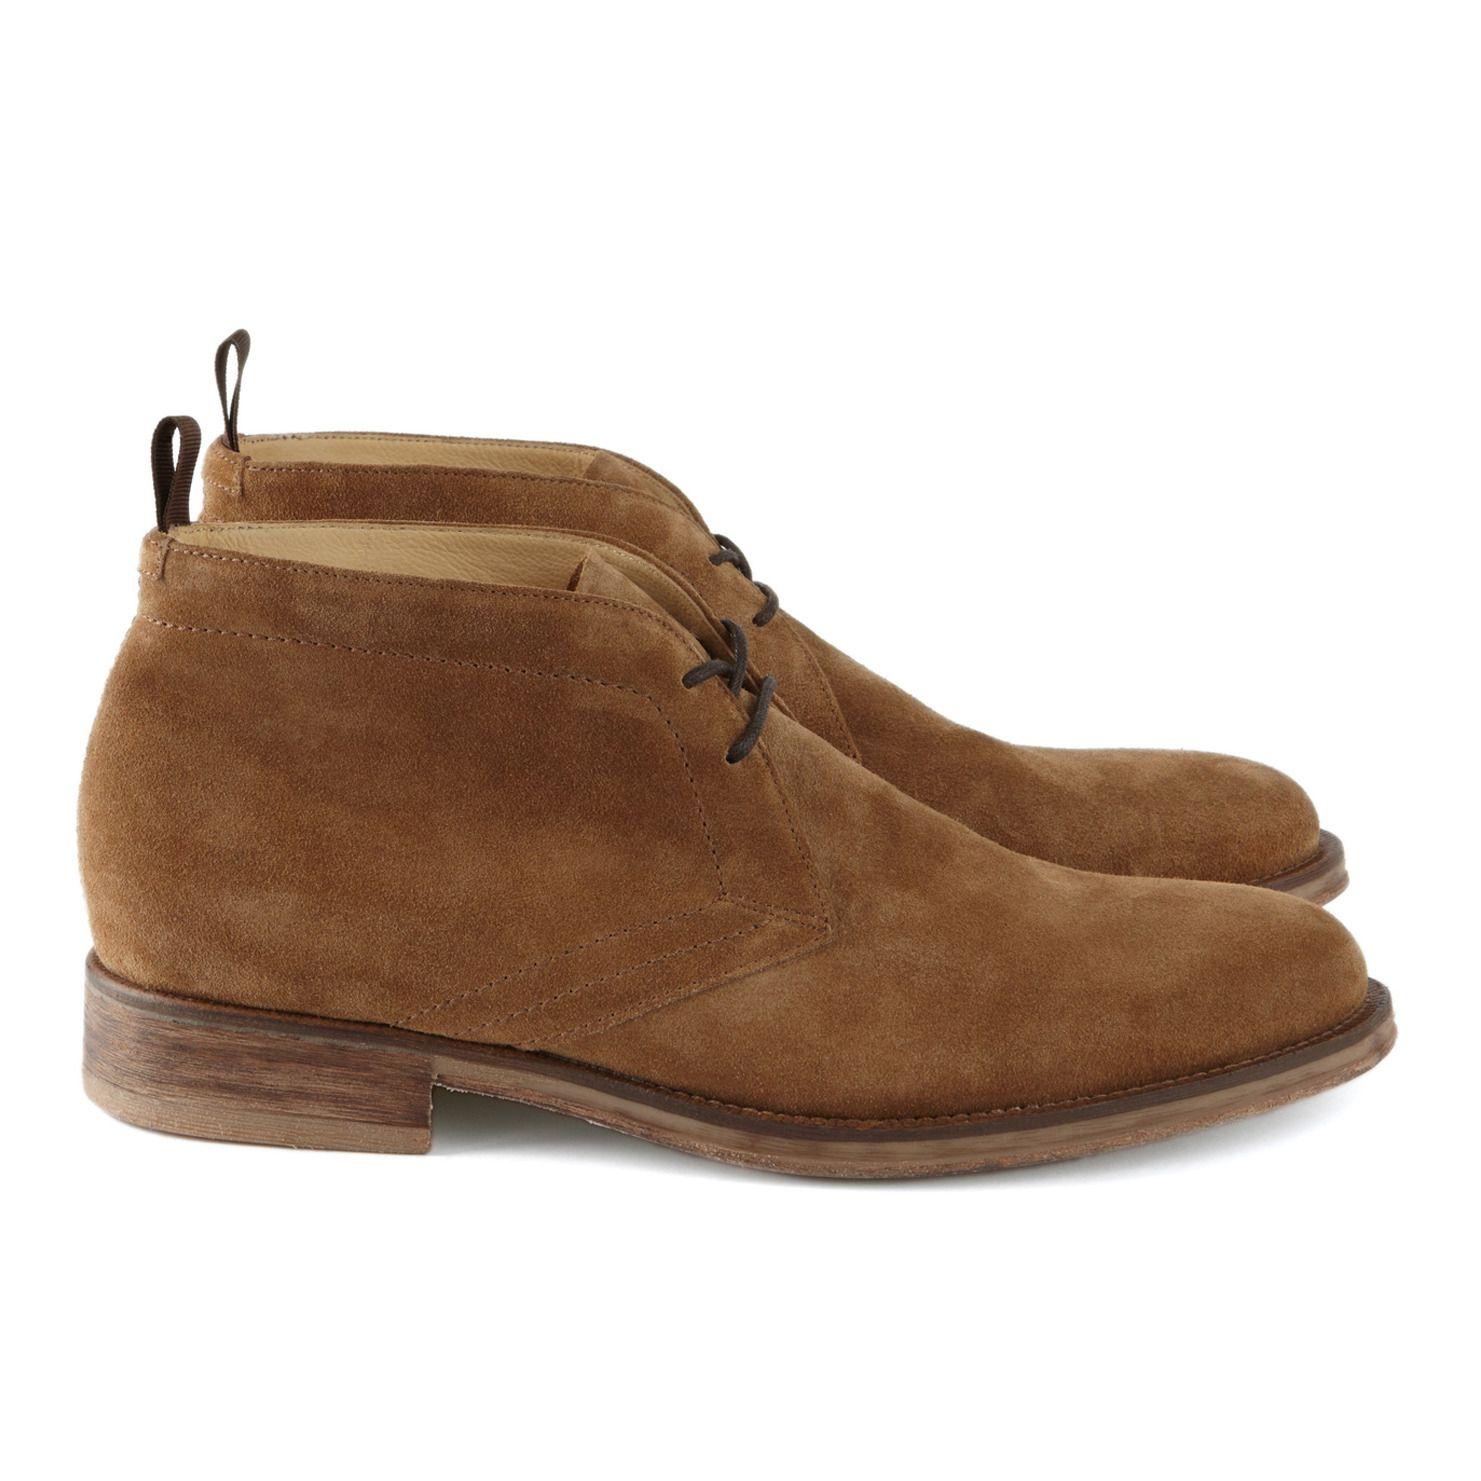 0119758189 PERAZA - mens shoes mr. bs for sale at ALDO Shoes. | Mens Style ...